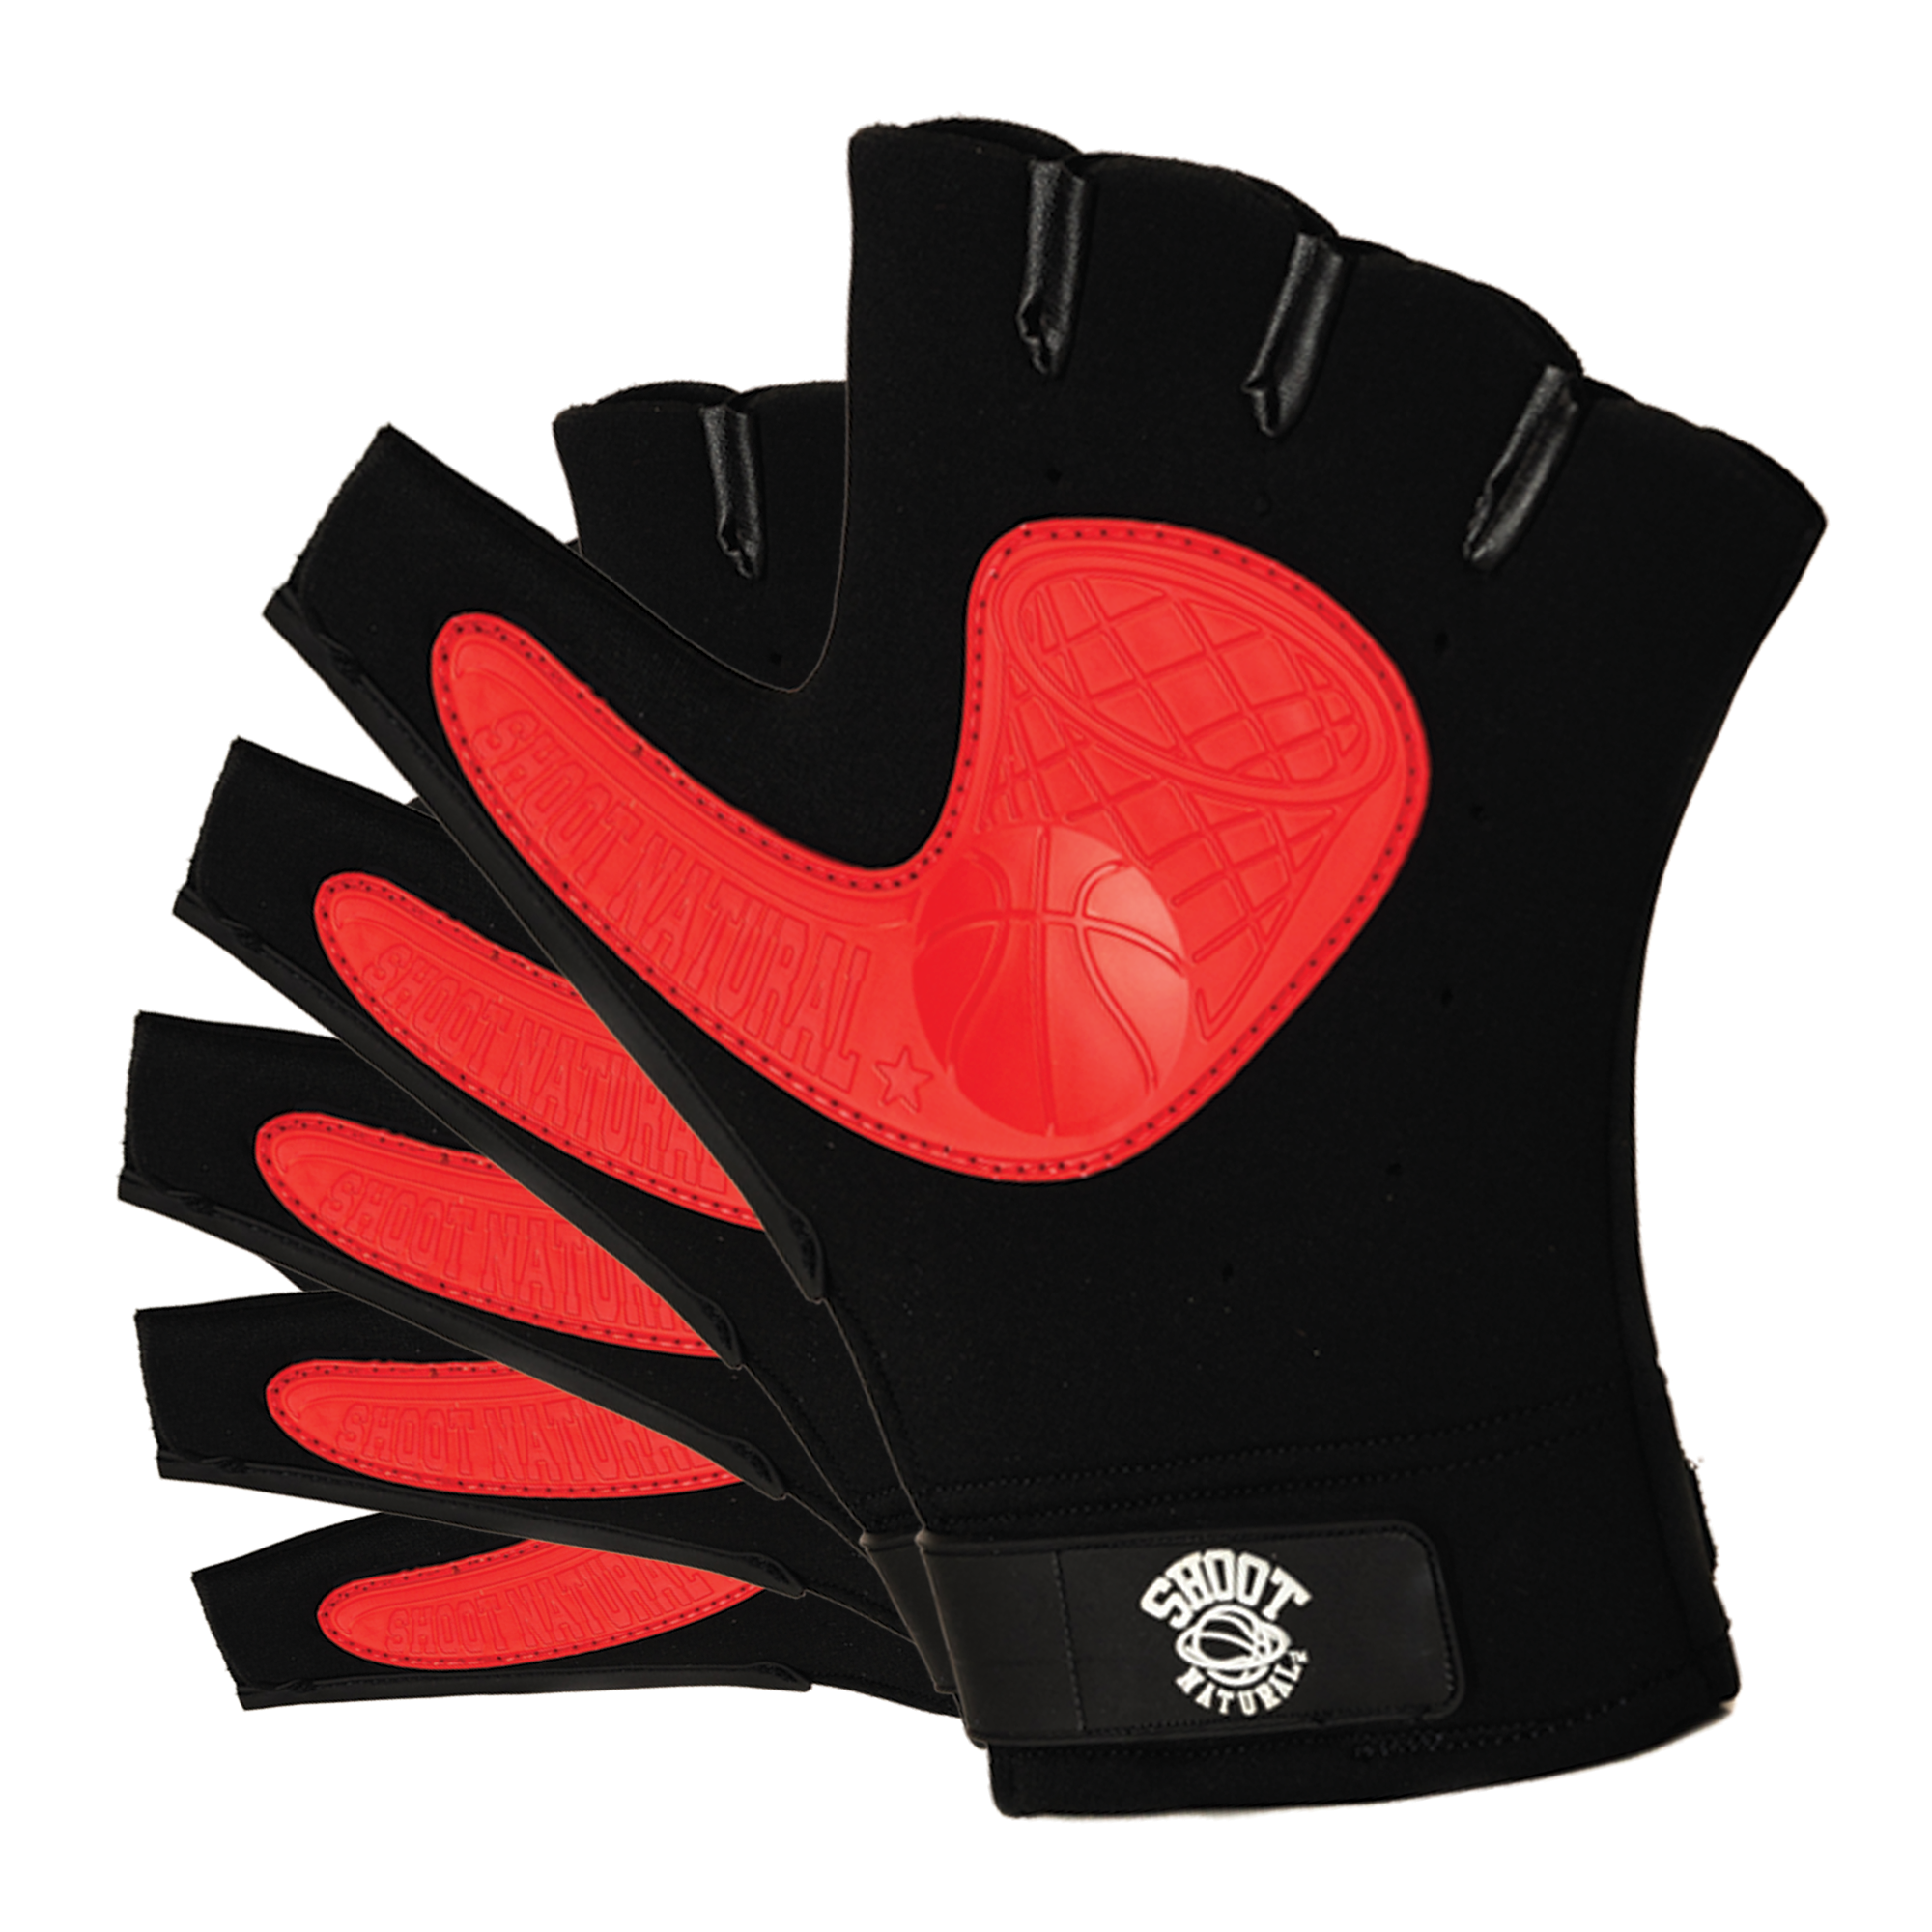 5 Shoot Natural™ Gloves - Team Special